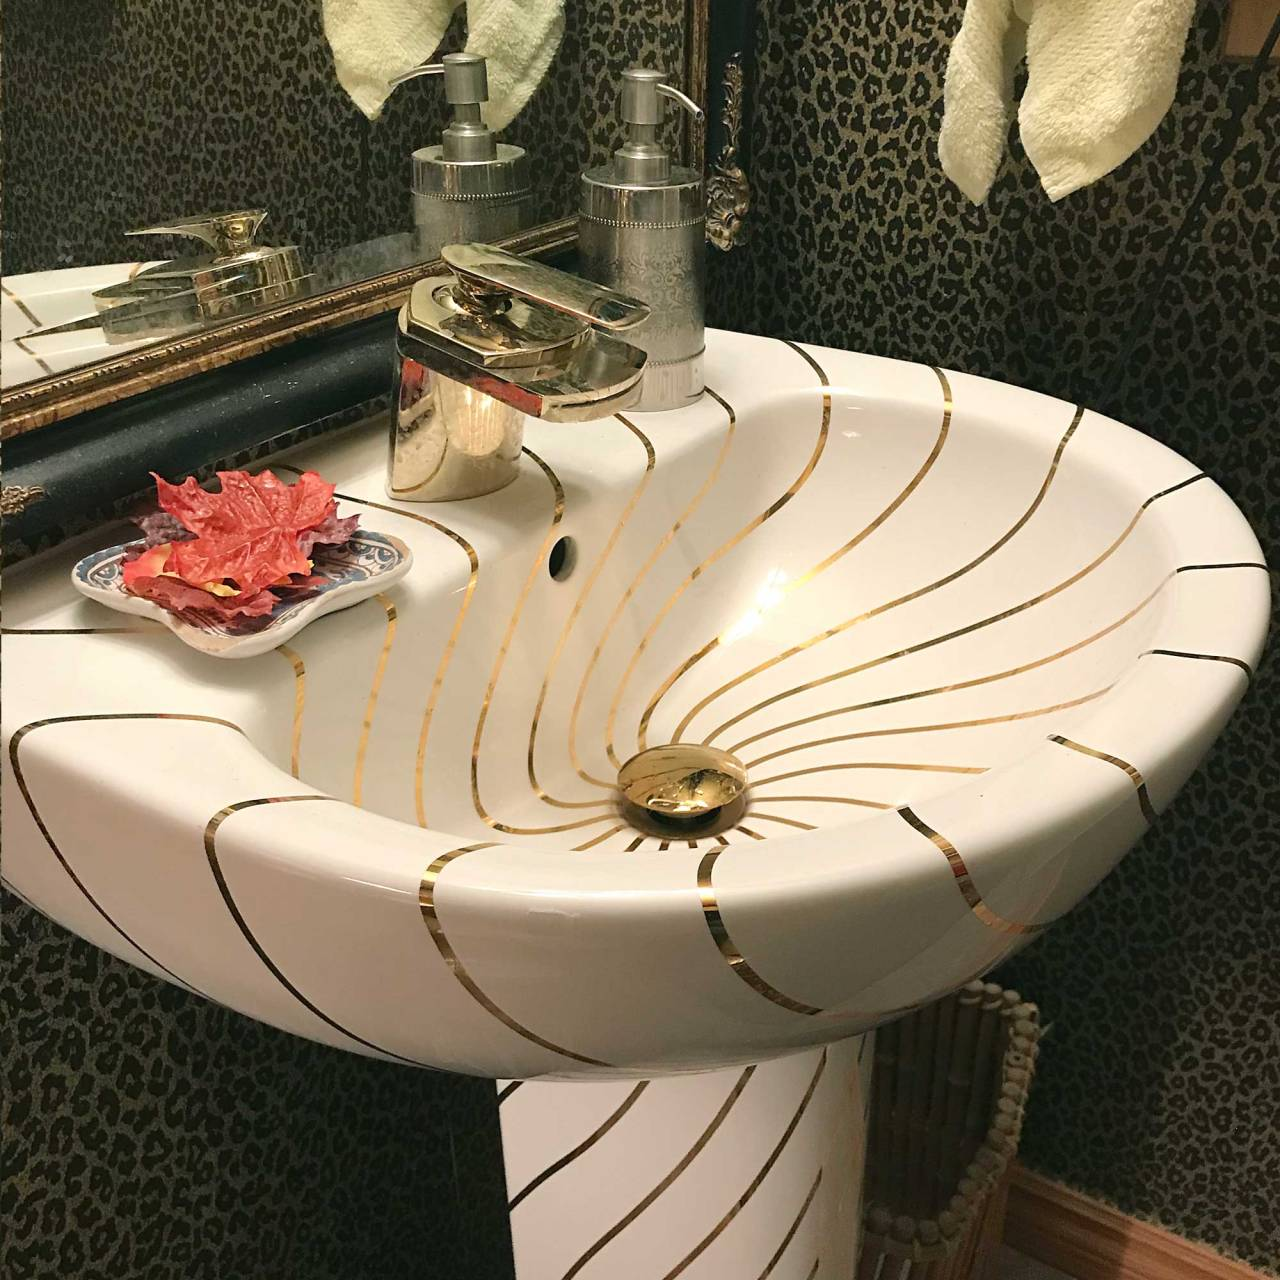 gold lines painted on pedestal sink